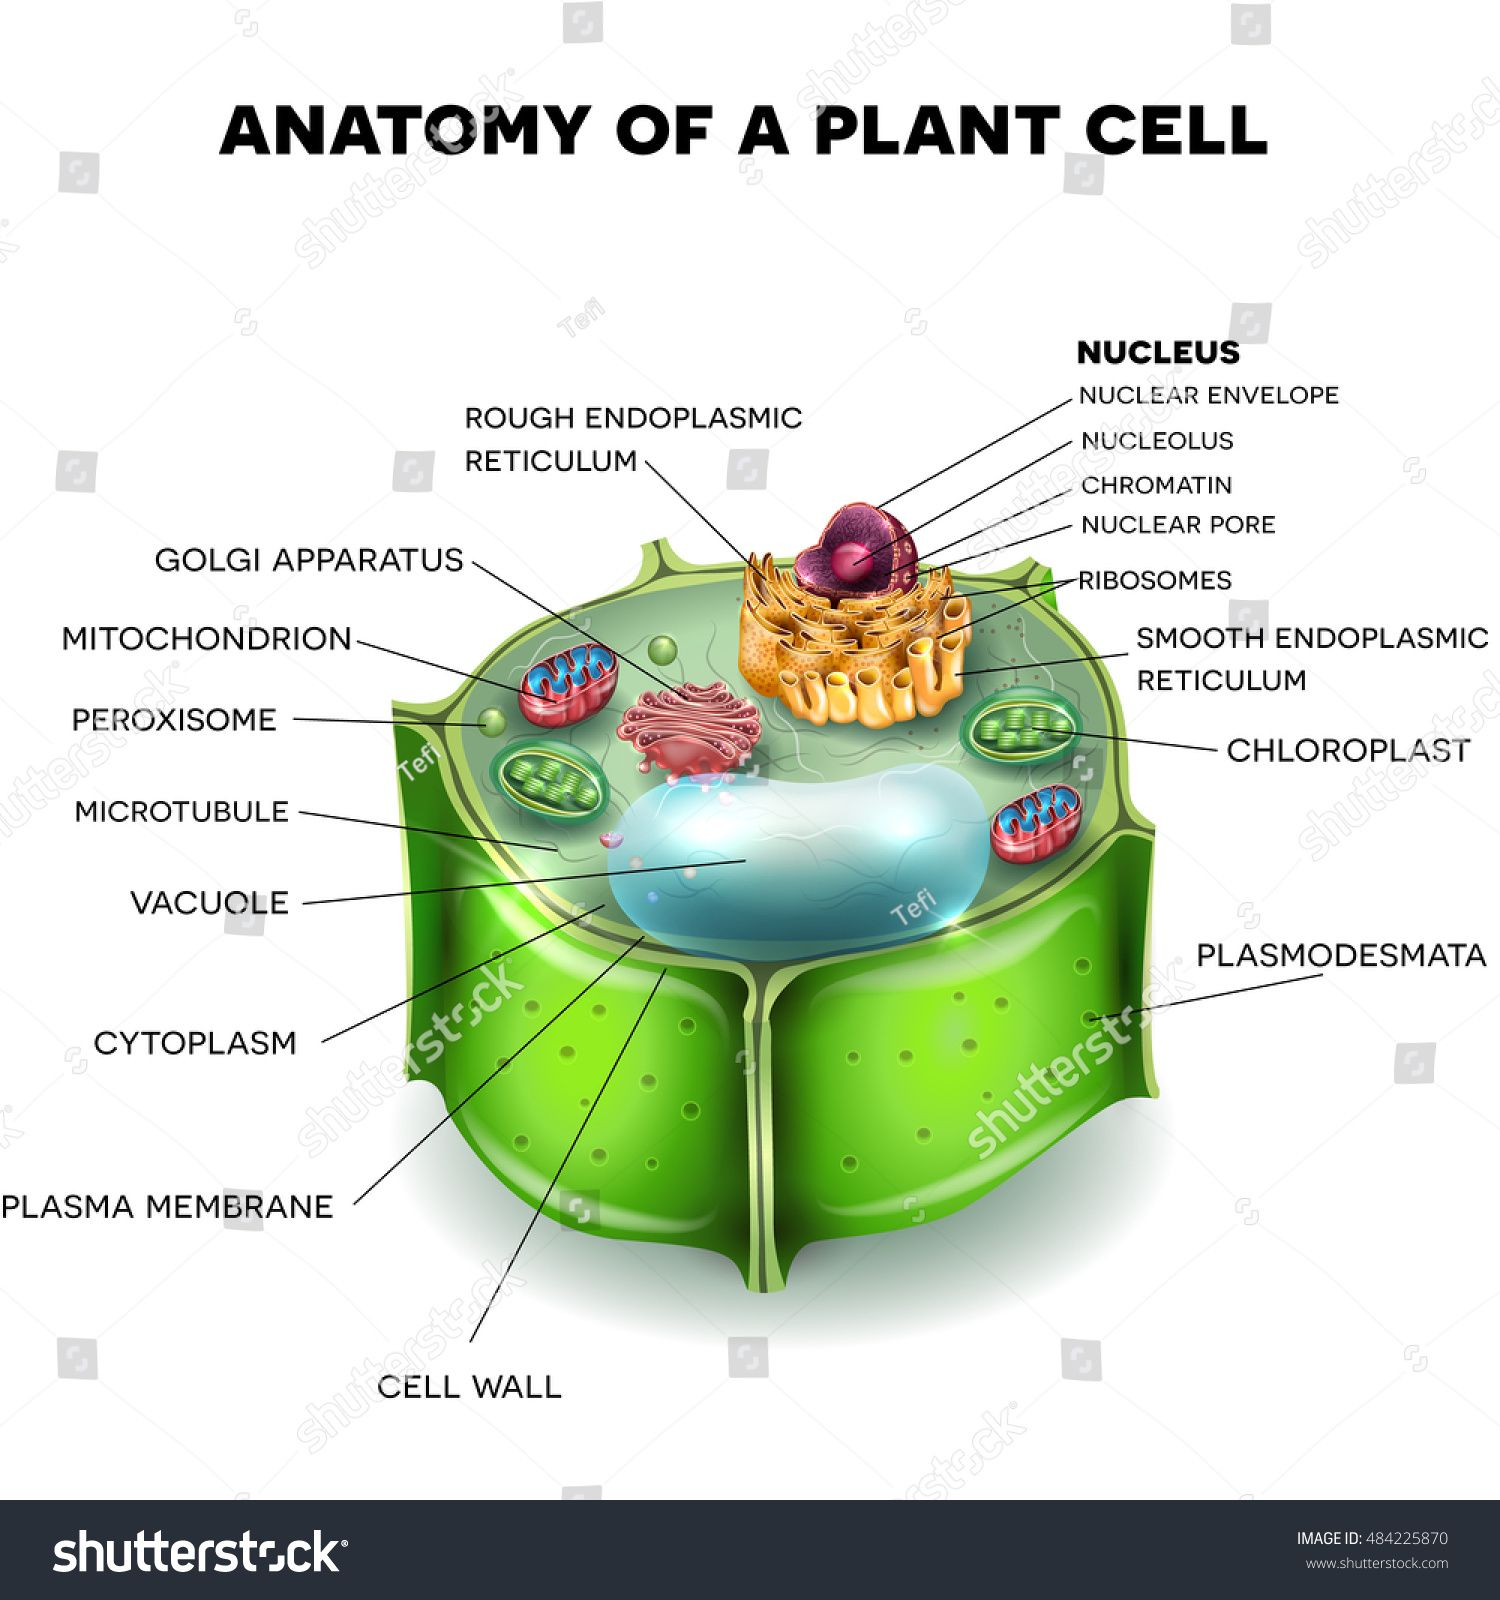 Plant Cell structure, cross section of the cell detailed